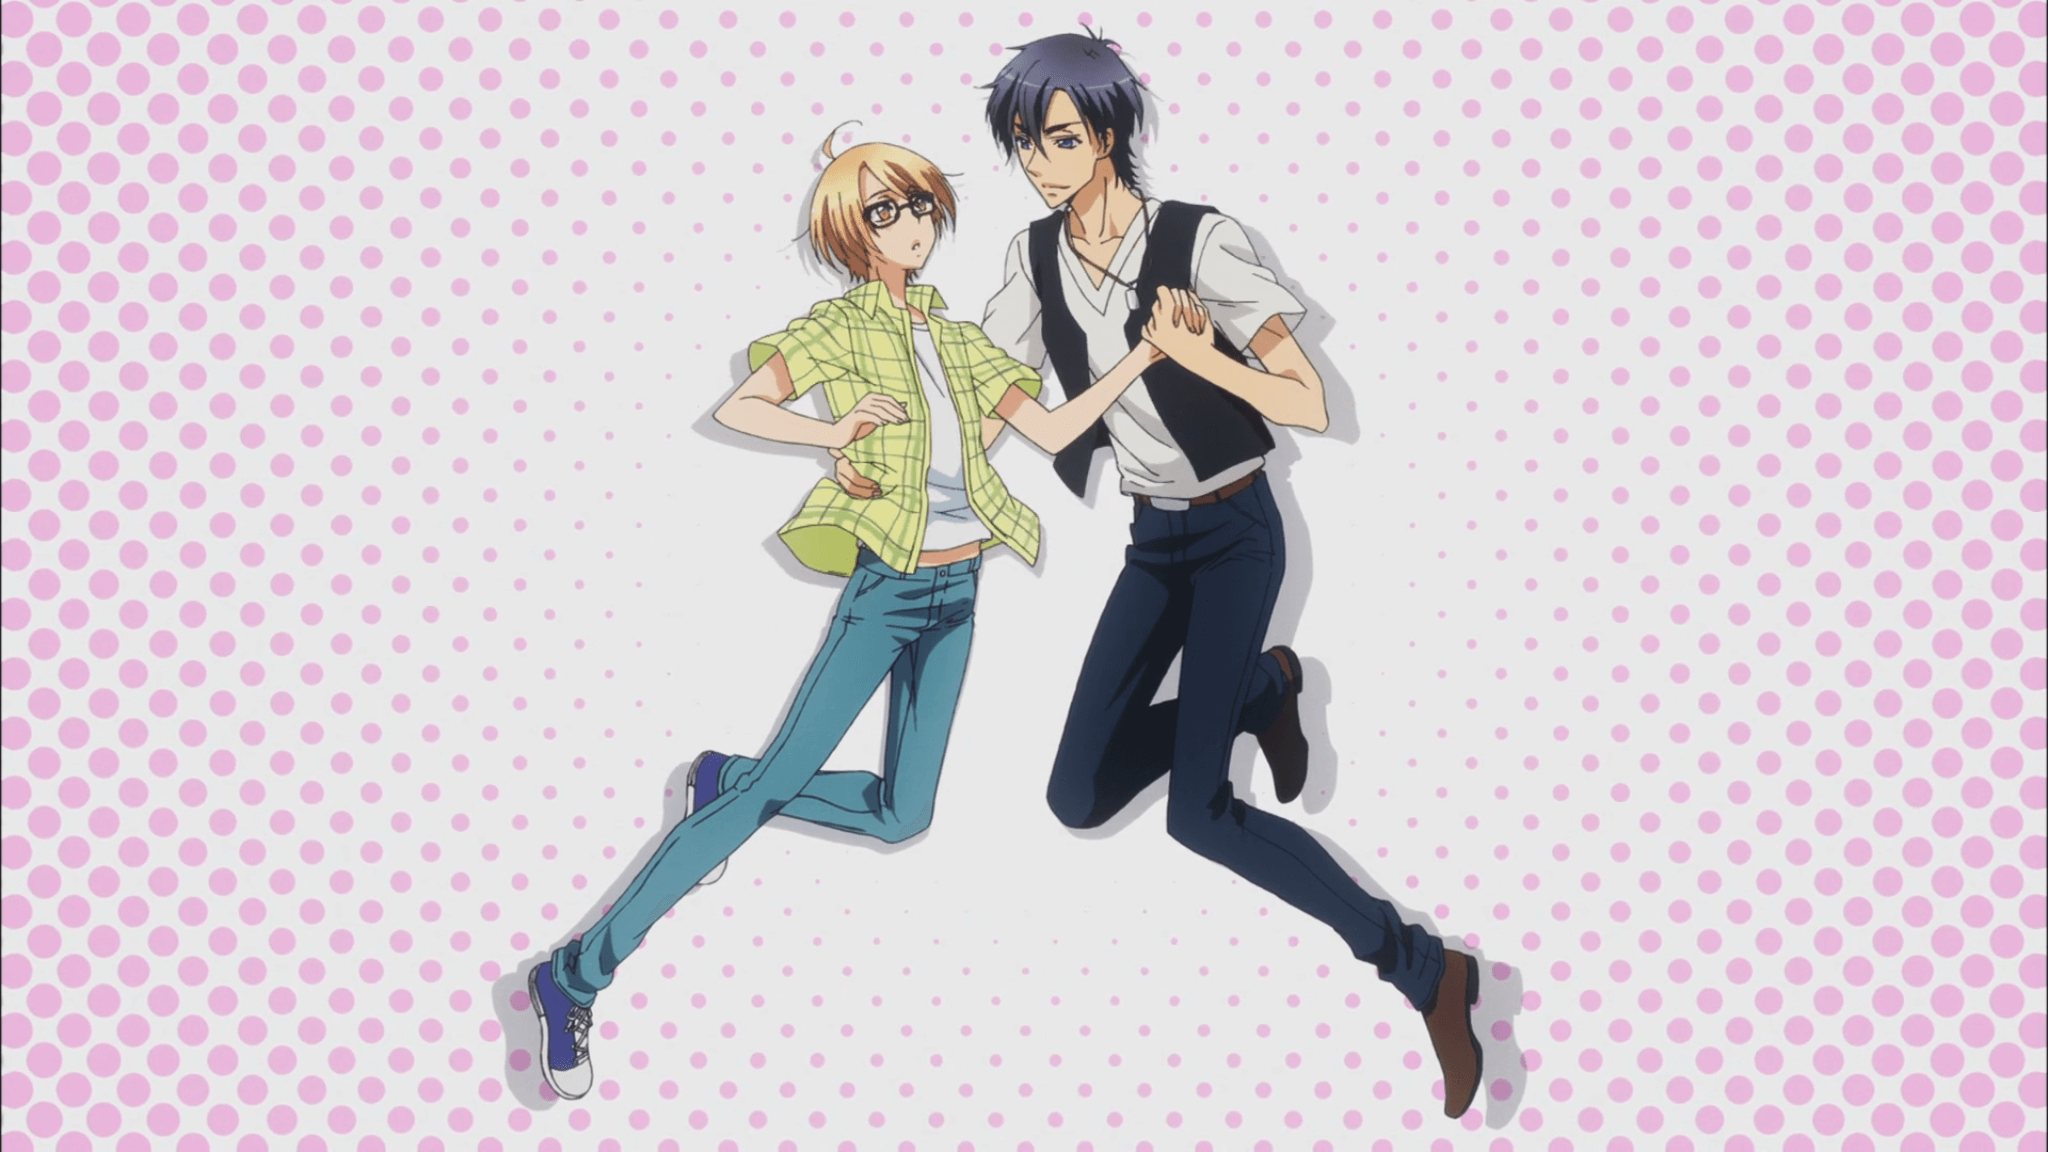 Love Stage yaoi wallpaper Izumi Sena and Ichijou Ryouma on pink background frame from anime - Ichijou Ryouma/Sena Izumi love-stage-yaoi Yaoi desktop wallpapers Ryouma Ichijou Izumi Sena - fanarts on yaoi-online.com